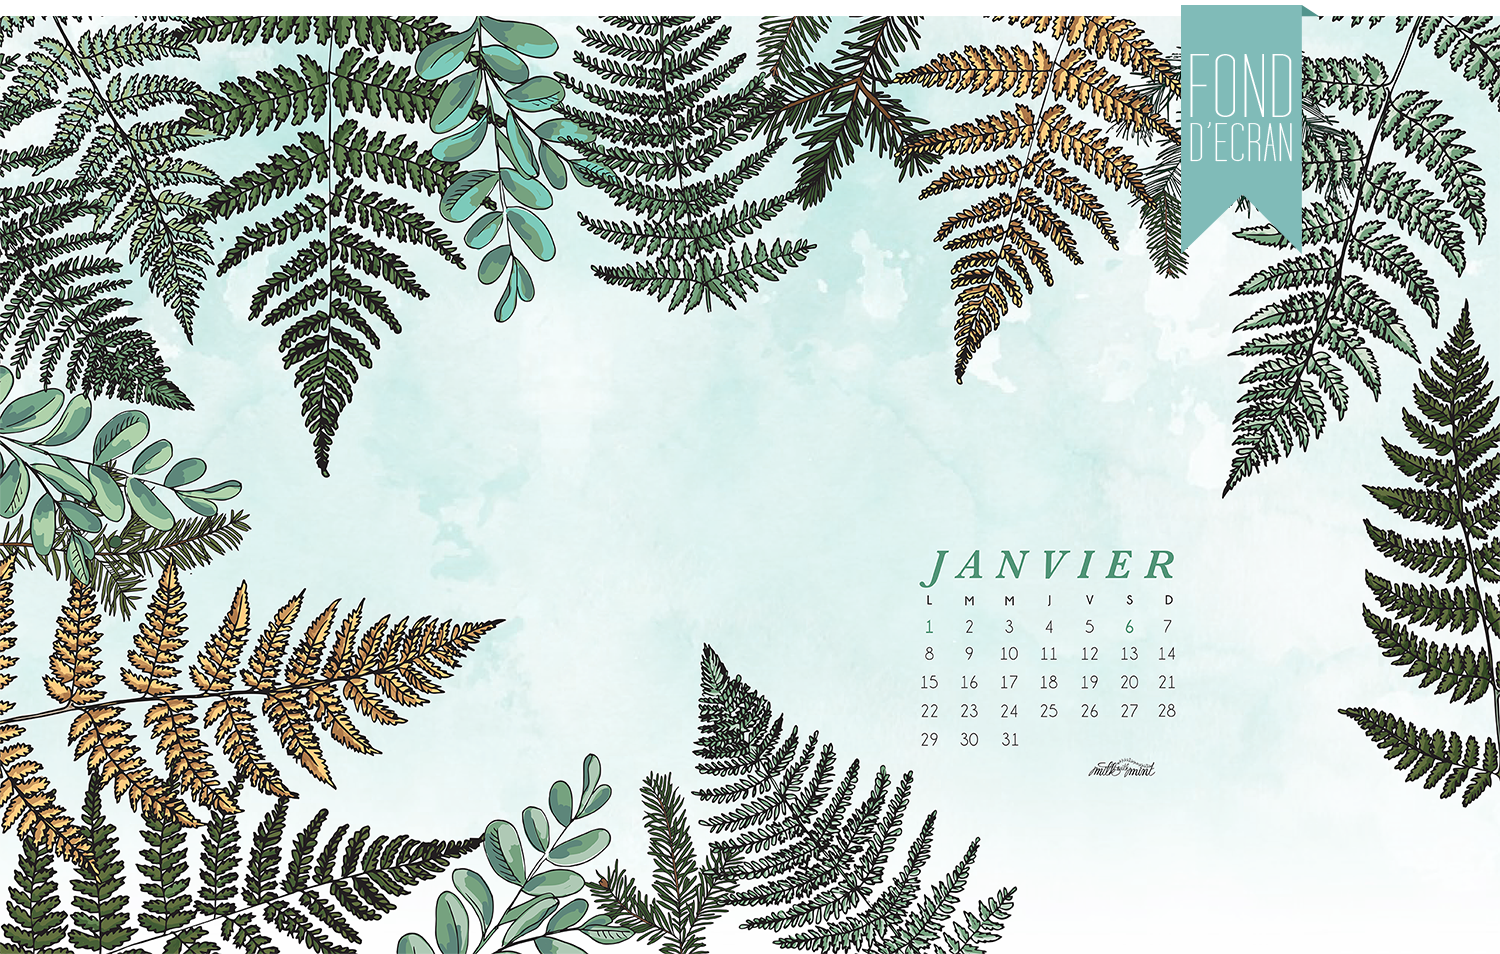 Calendrier de janvier 2018 milk with mint for Fond ecran janvier